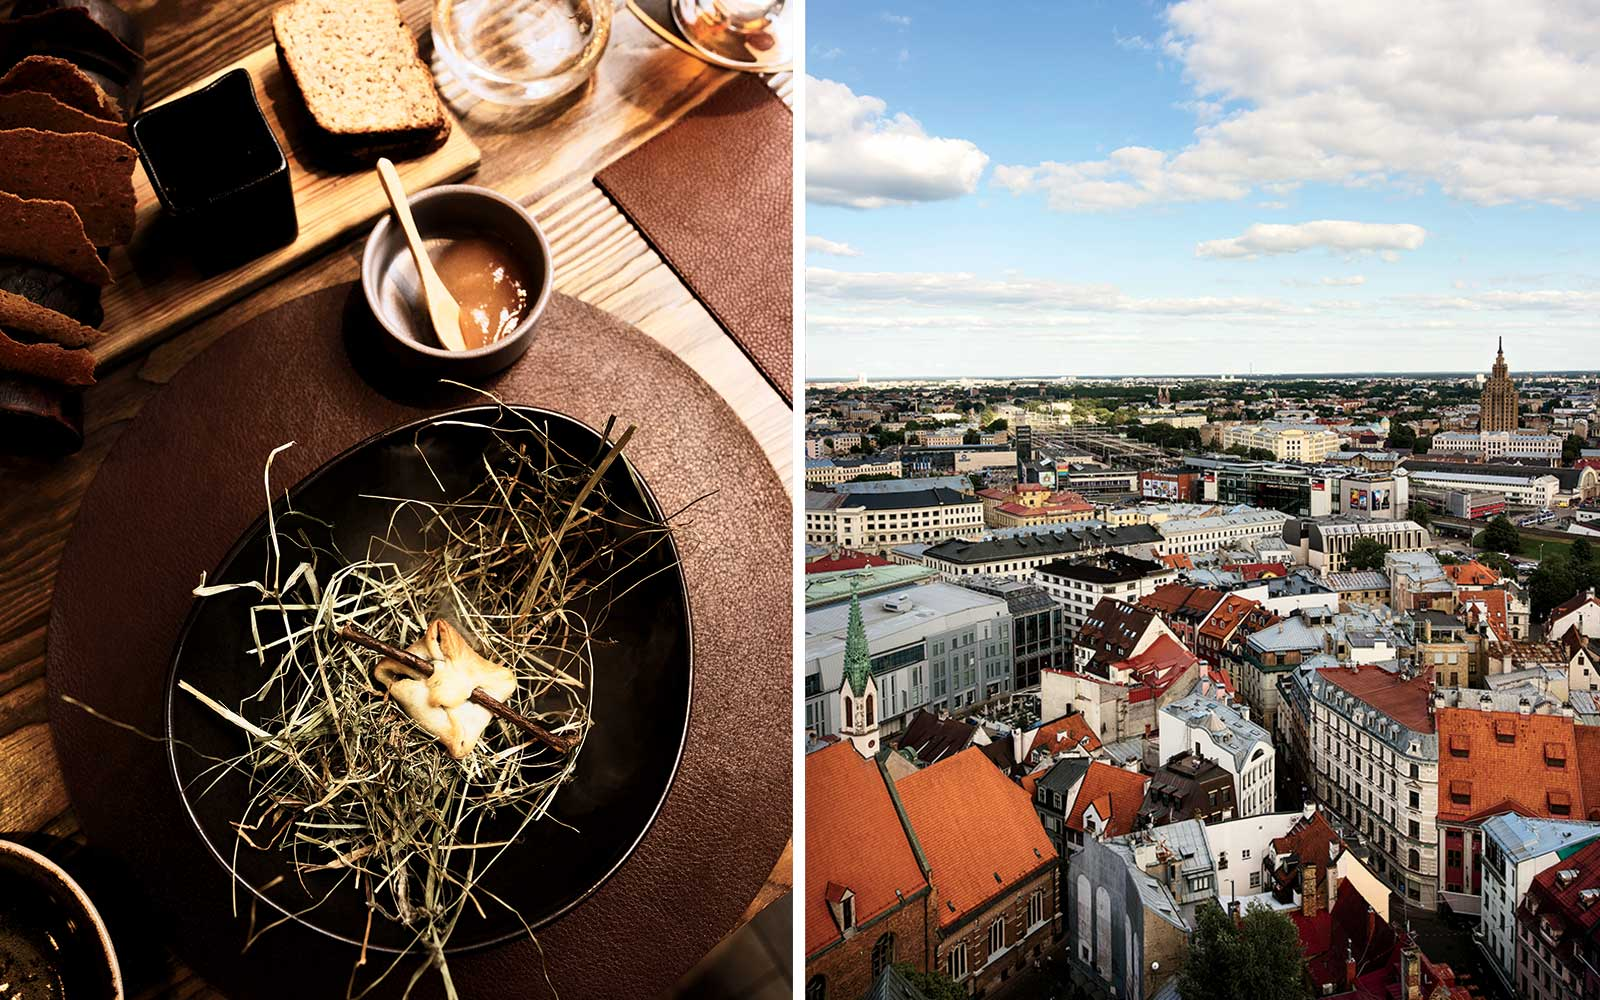 Dining and attractions in Riga, Latvia